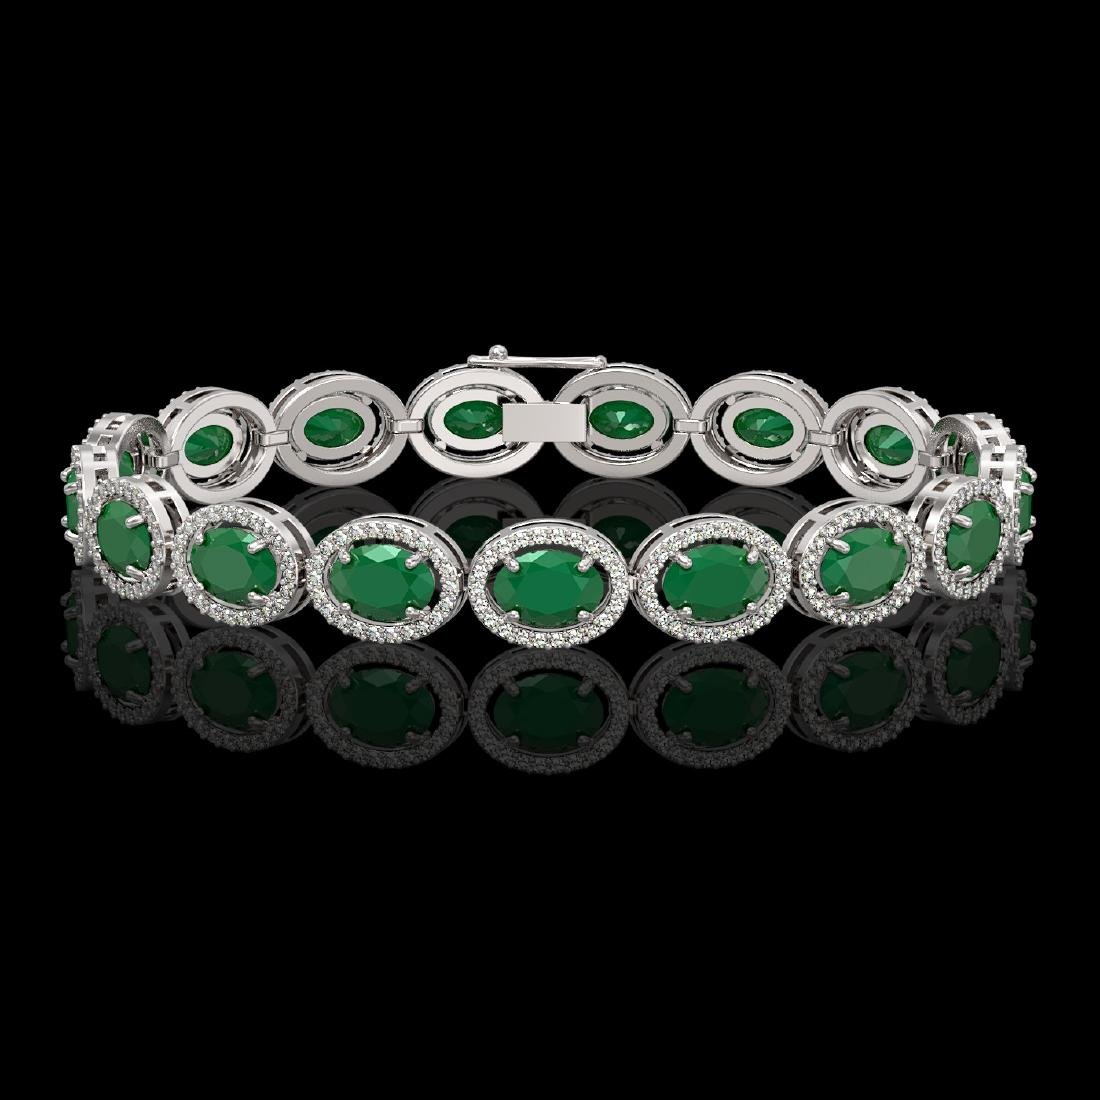 22.89 CTW Emerald & Diamond Halo Bracelet 10K White